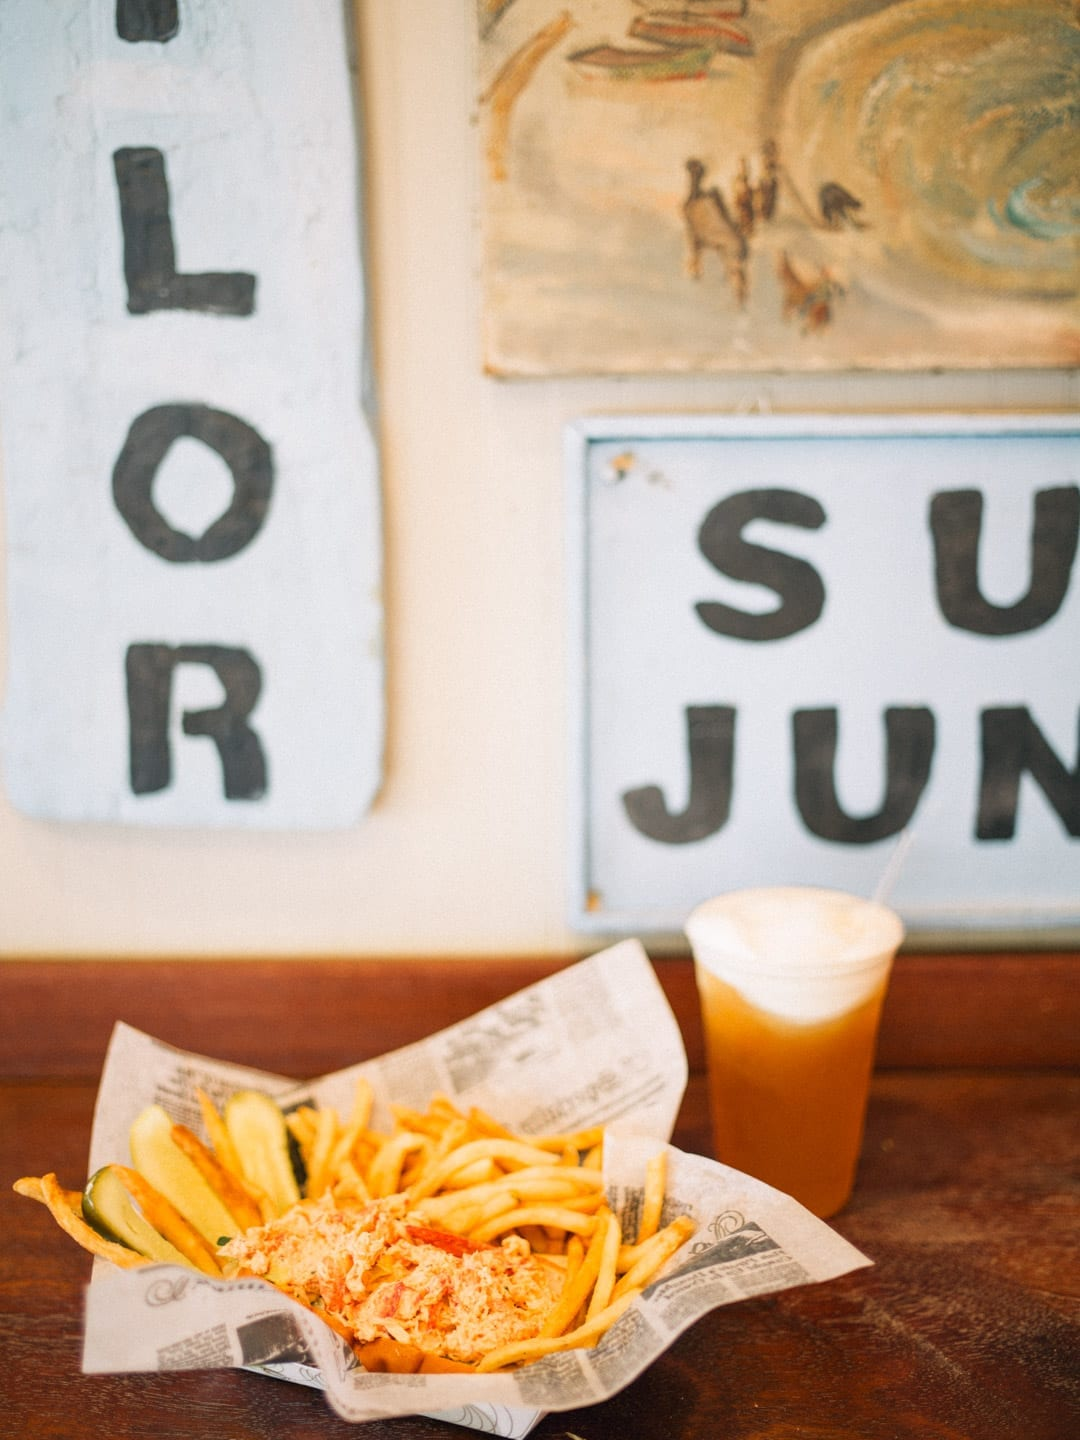 Martha's Vineyard Guide - Lobster roll, fries, and a beer